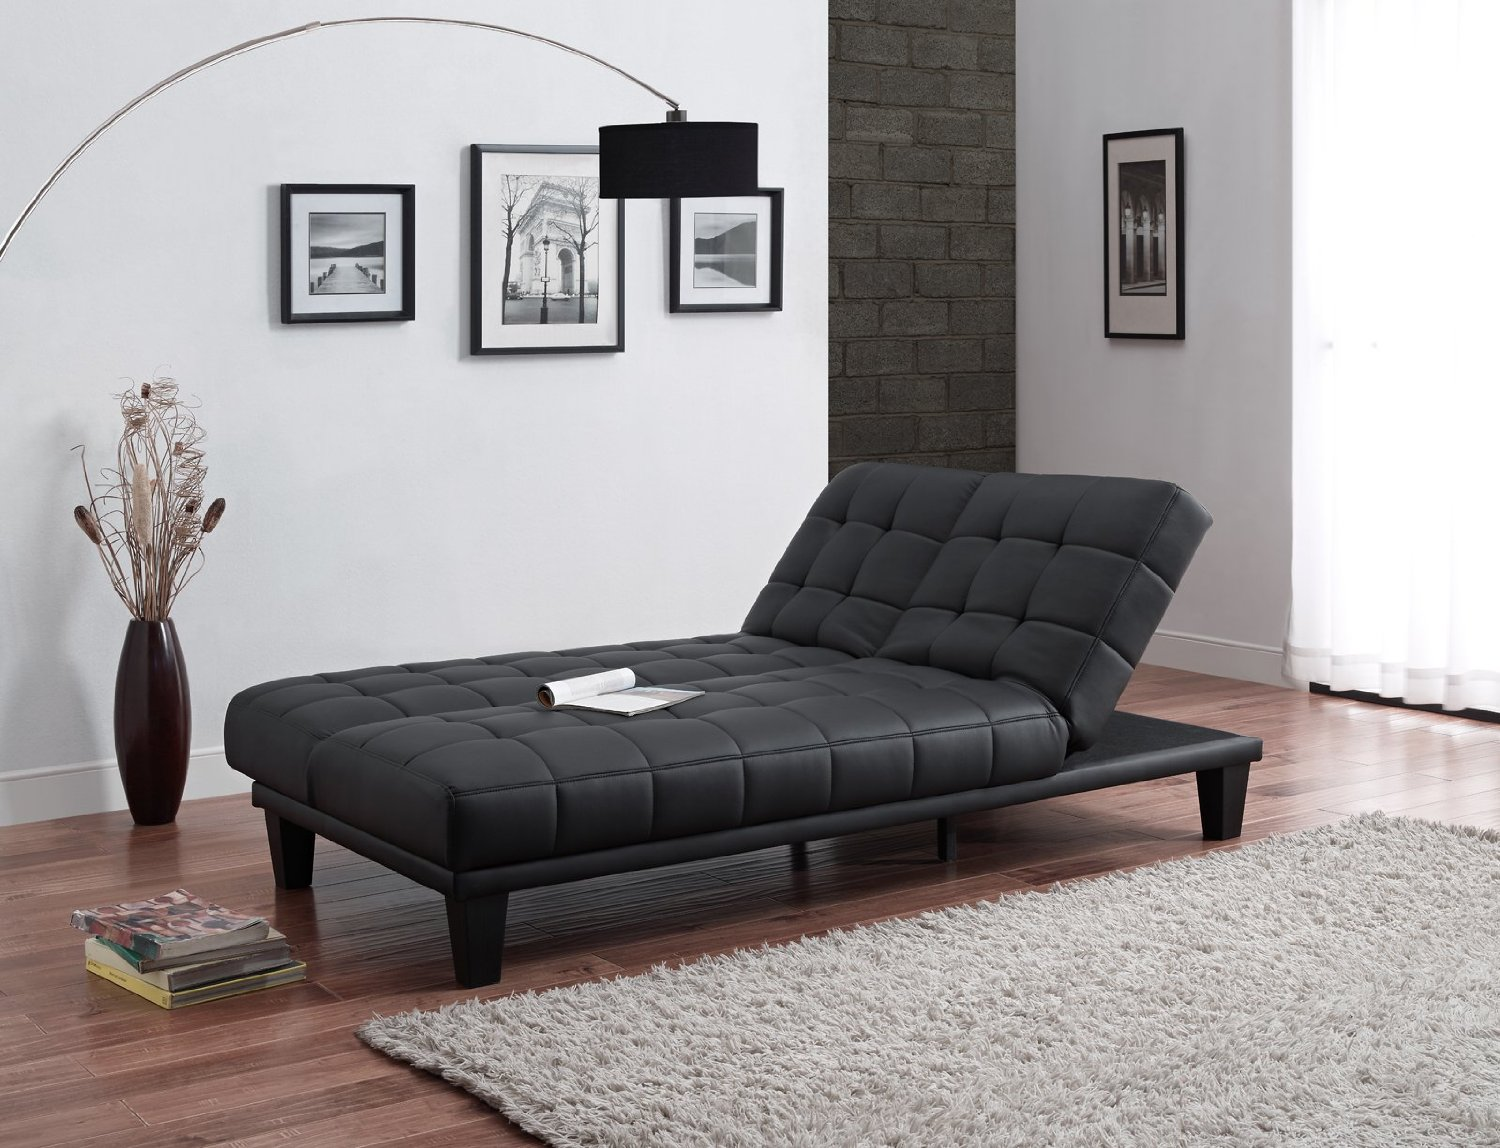 Futon Lounge Home Decor